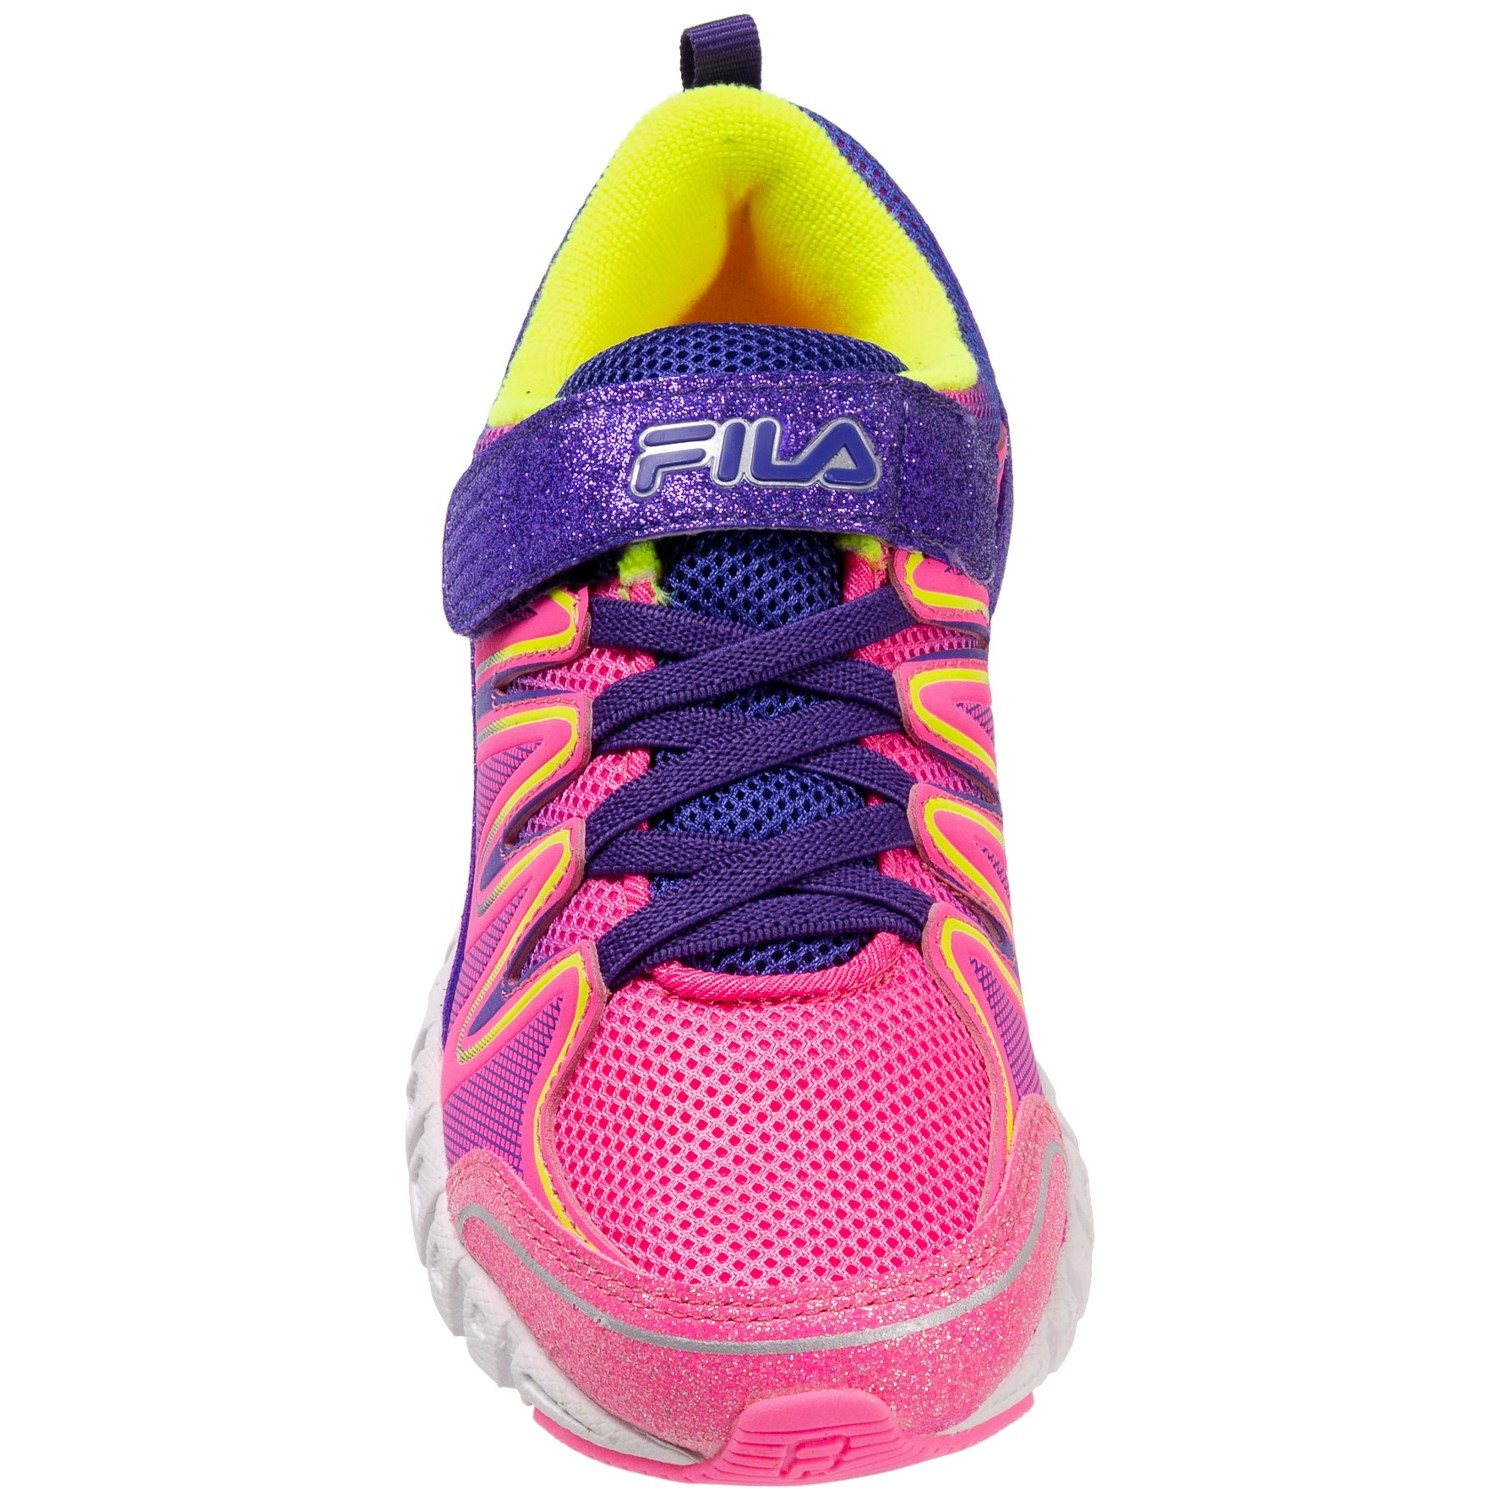 7f95b3d4b438 Fila Crater 4 Strap Glitter Running Shoes (For Little and Big Girls ...